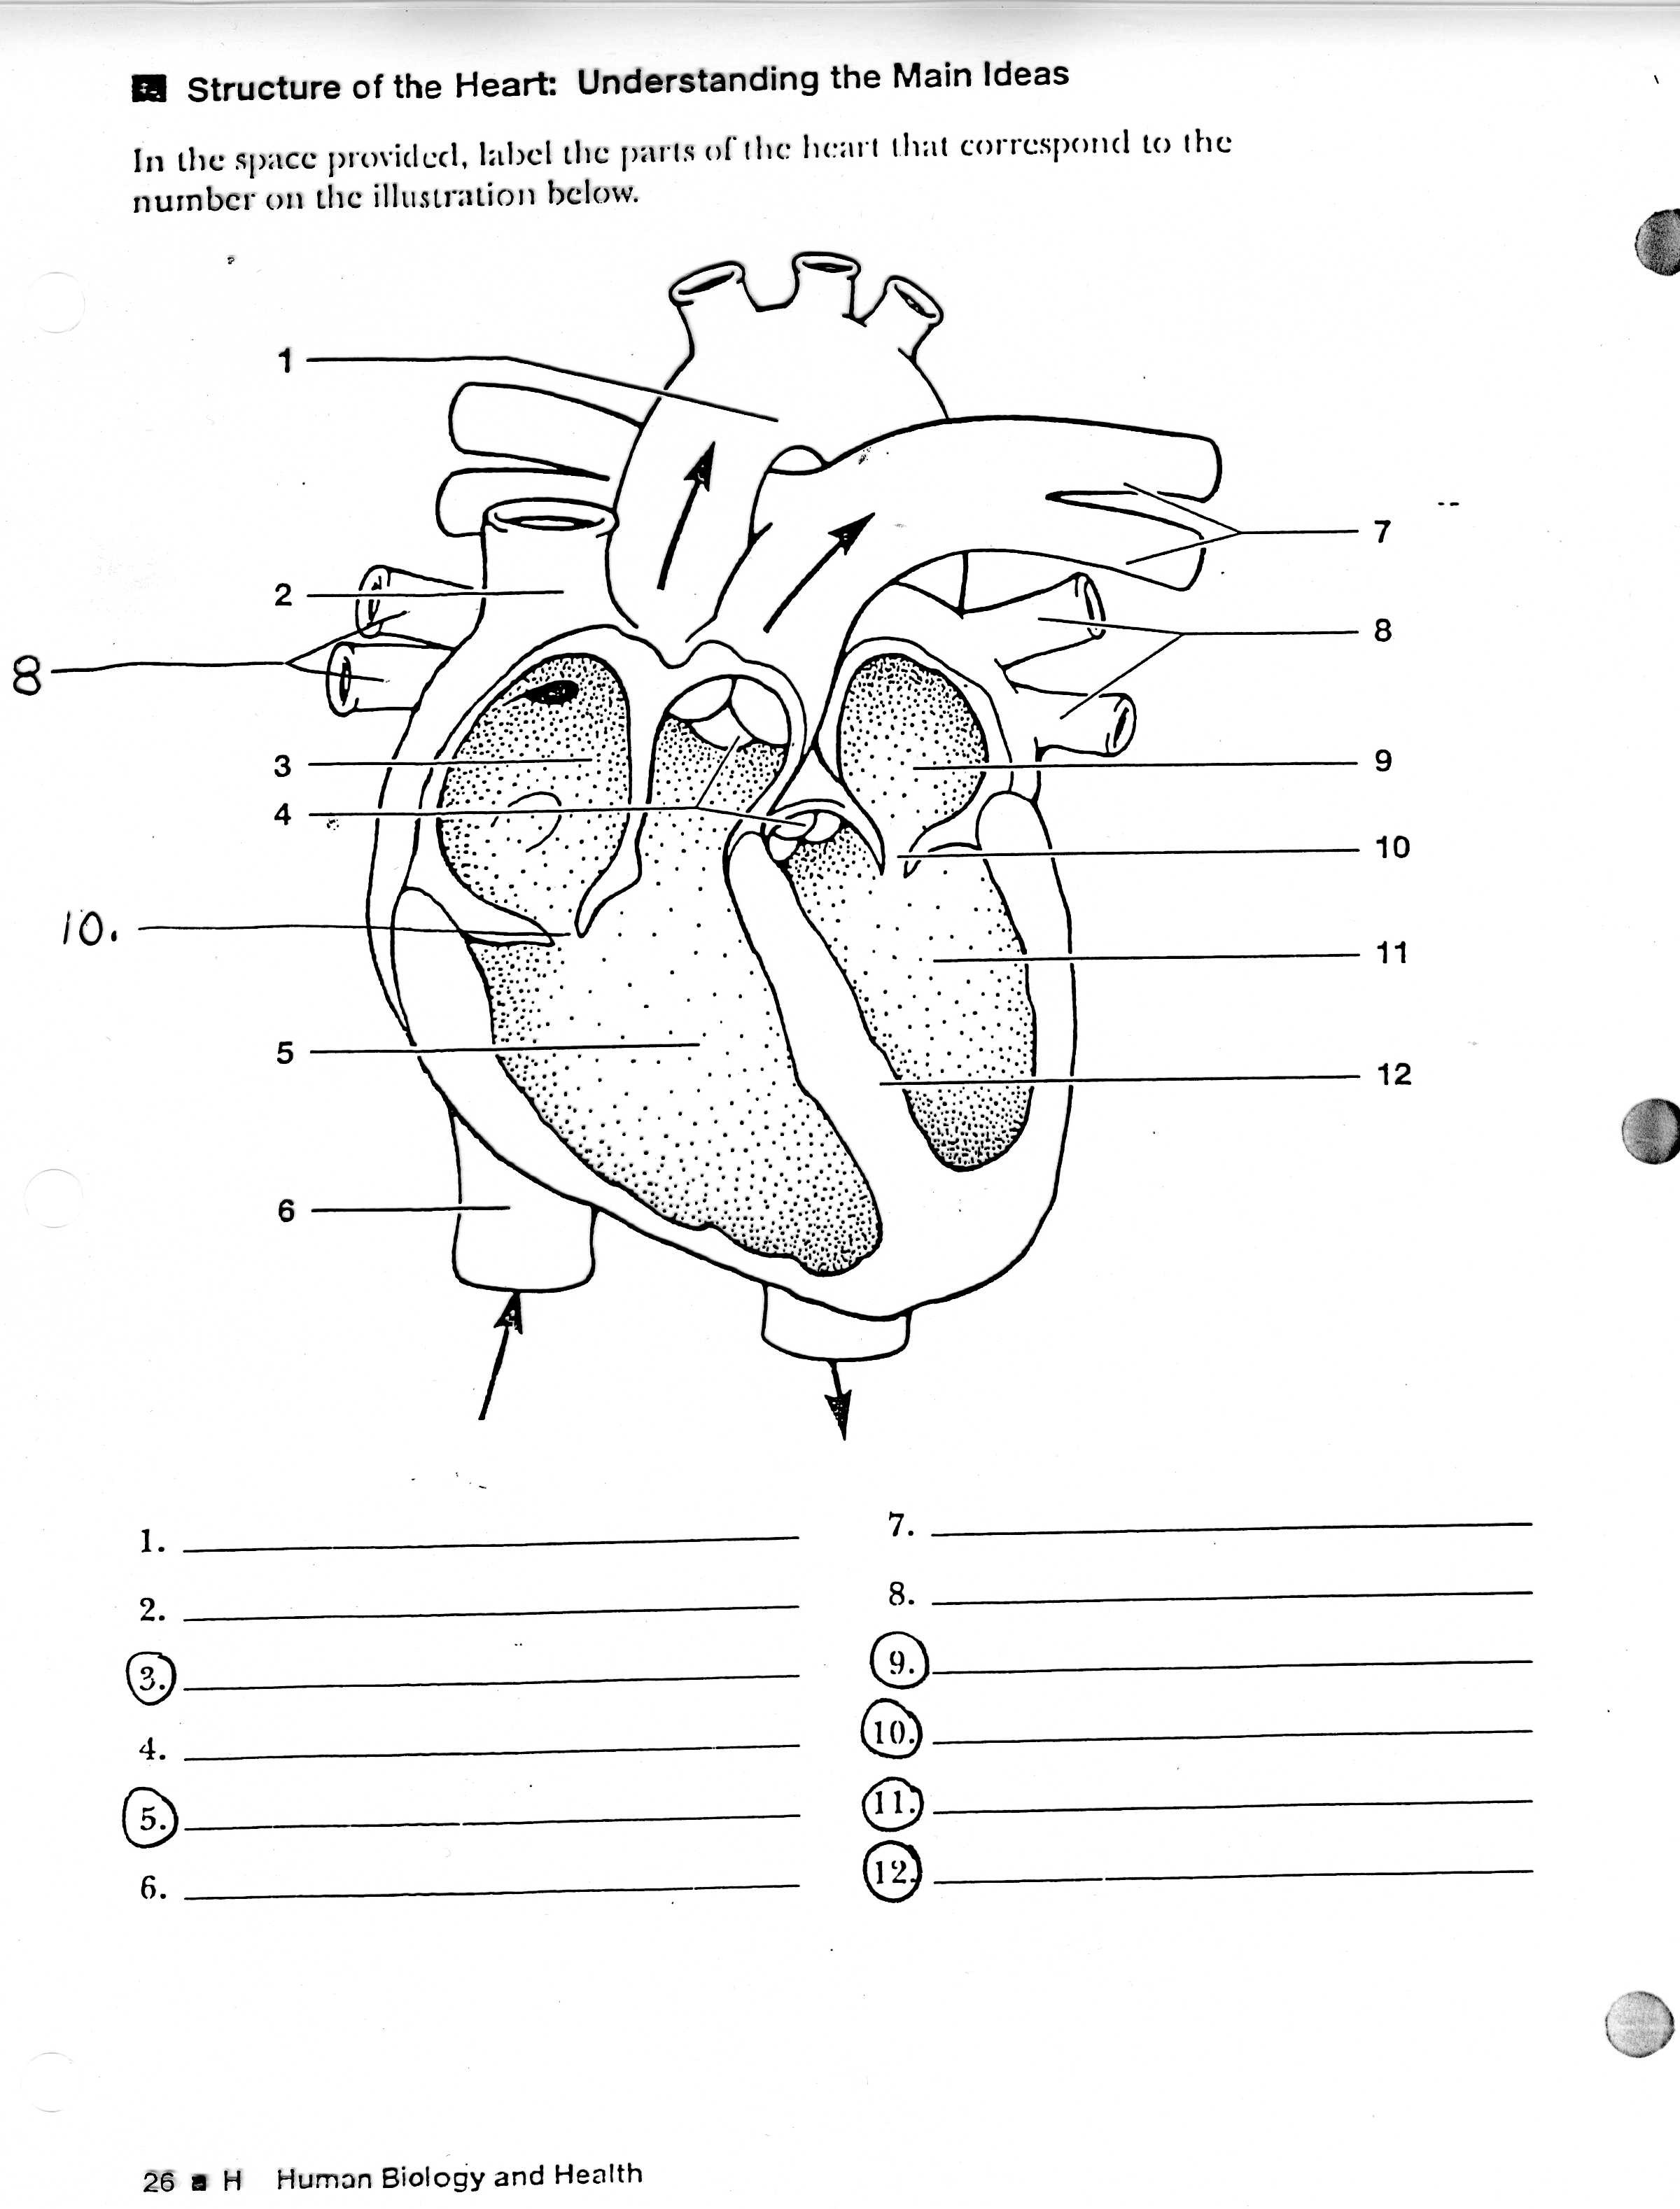 Printable Heart Diagram Free Unlabelled Diagram the Heart Download Free Clip Art